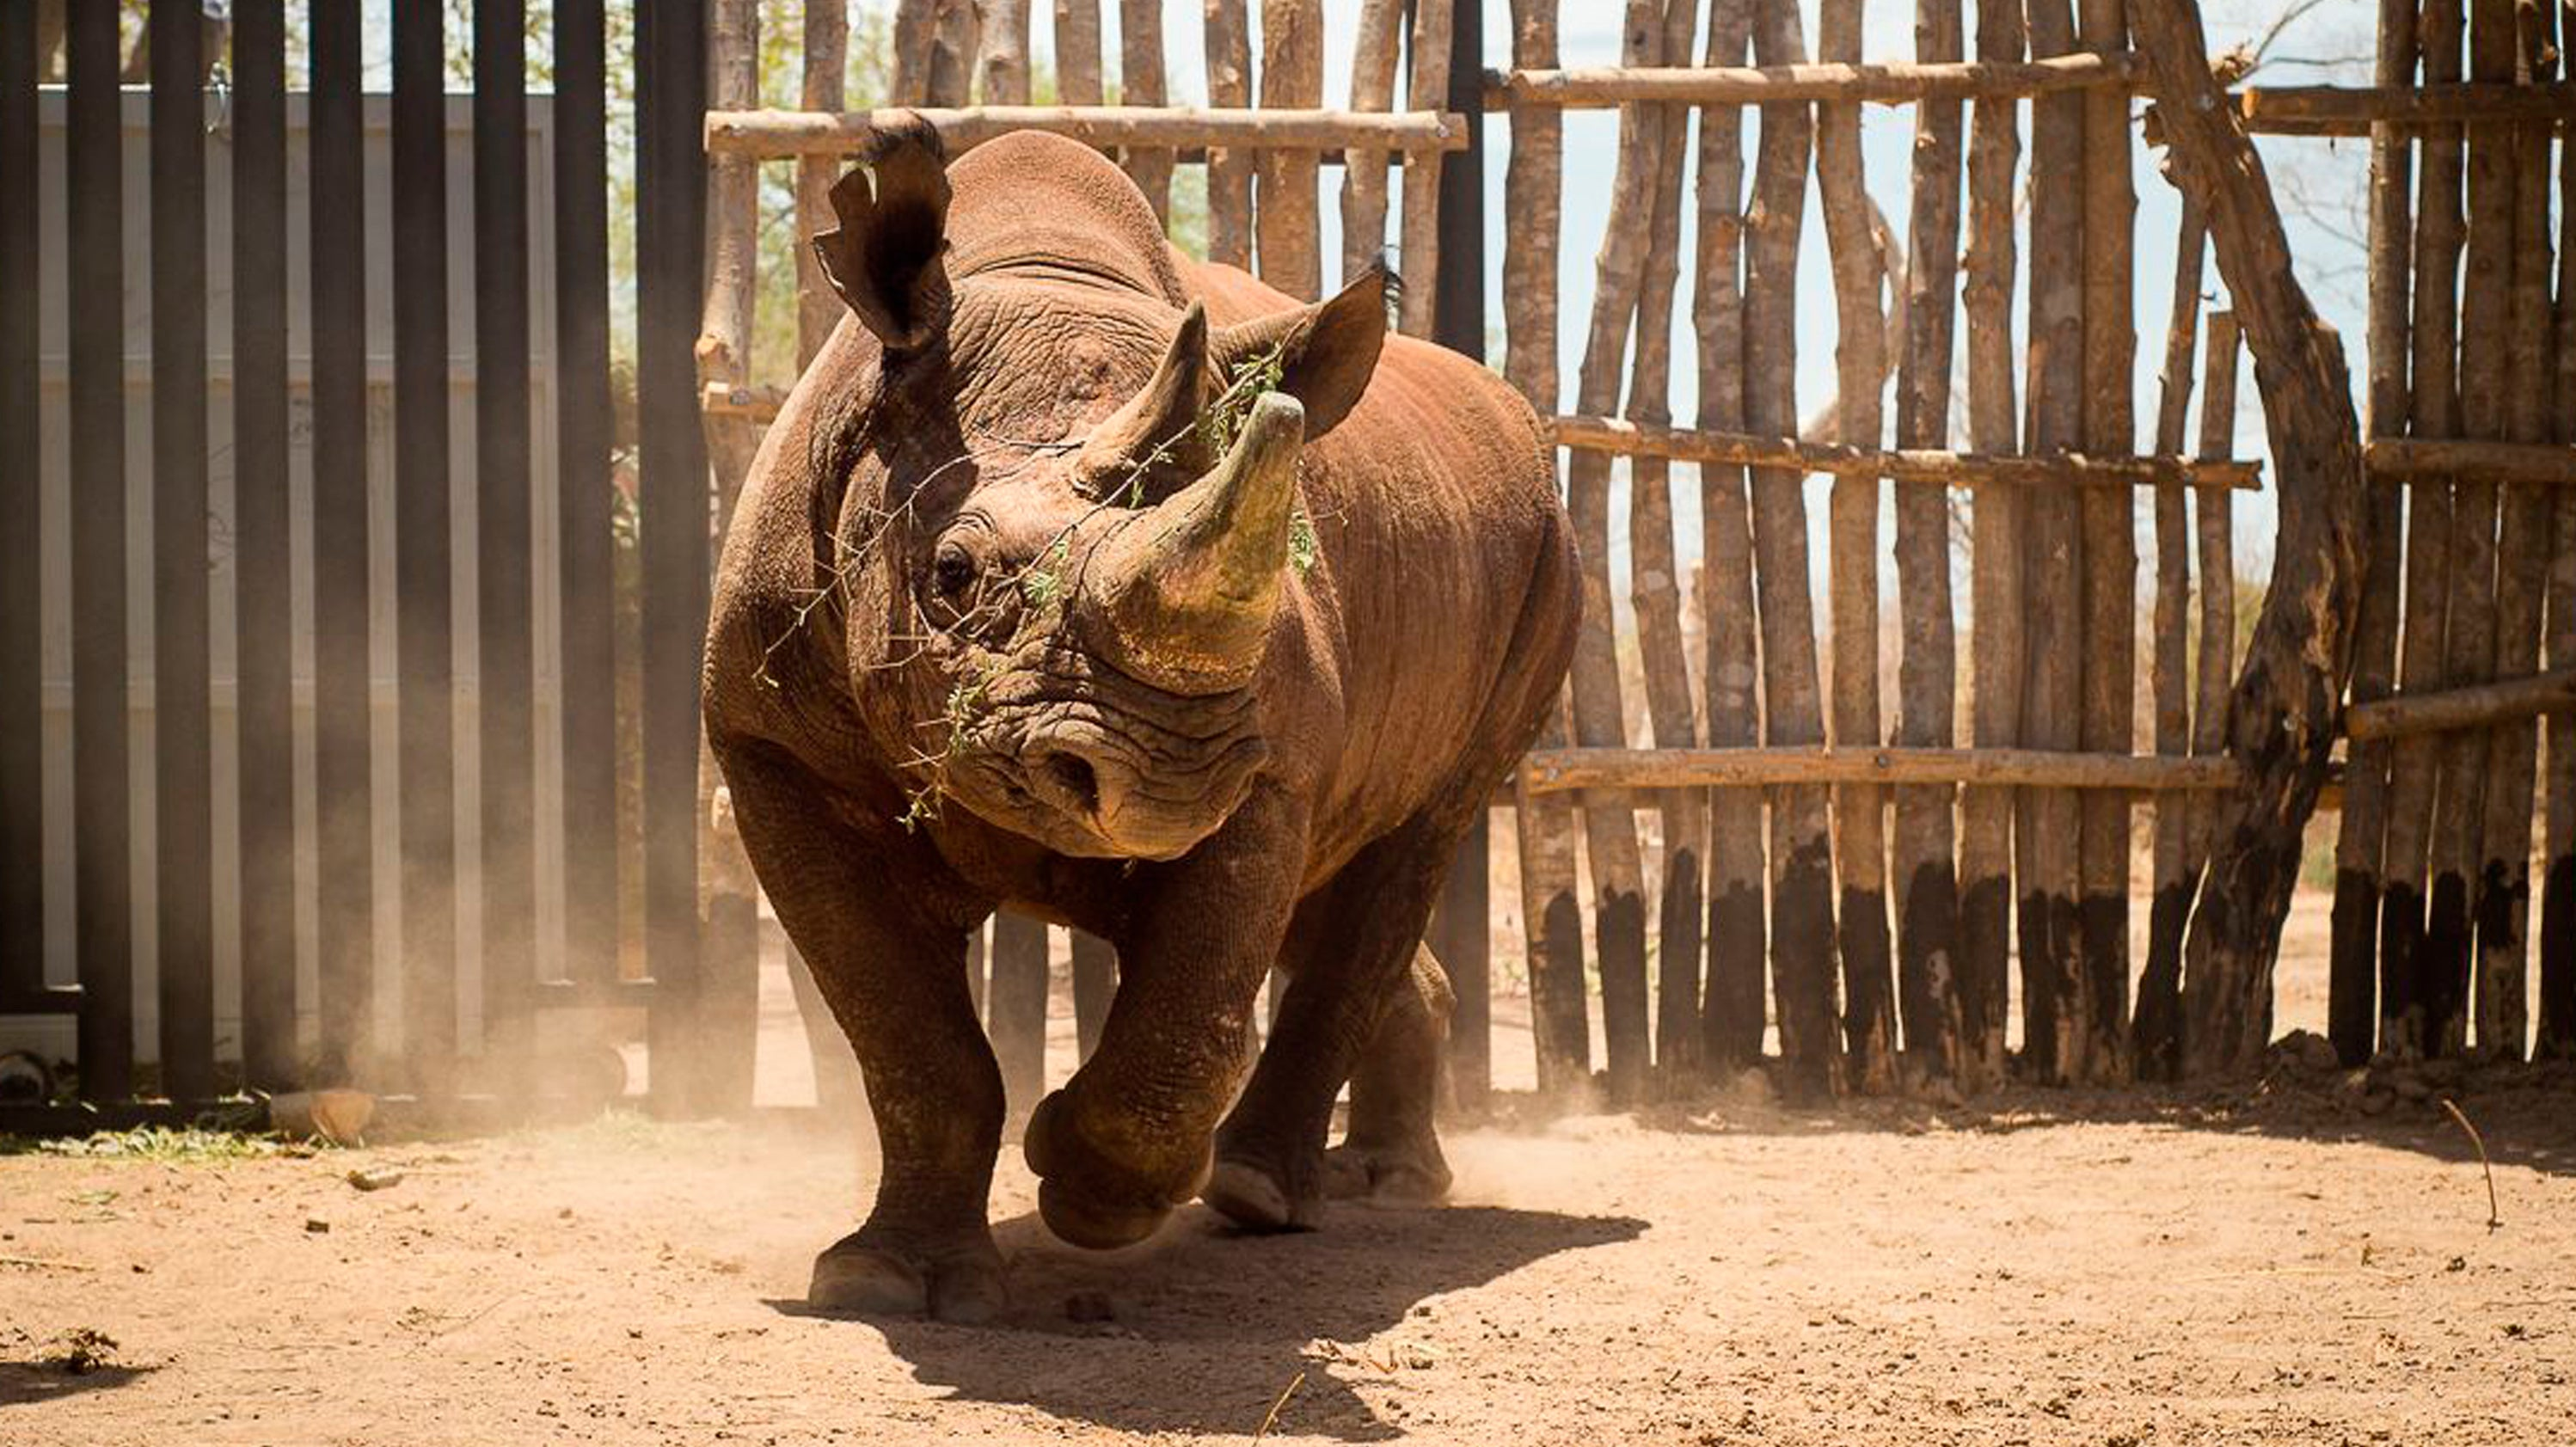 International Auction Houses Sotheby's, Bonhams Say They Will Stop Selling Rhino Horn